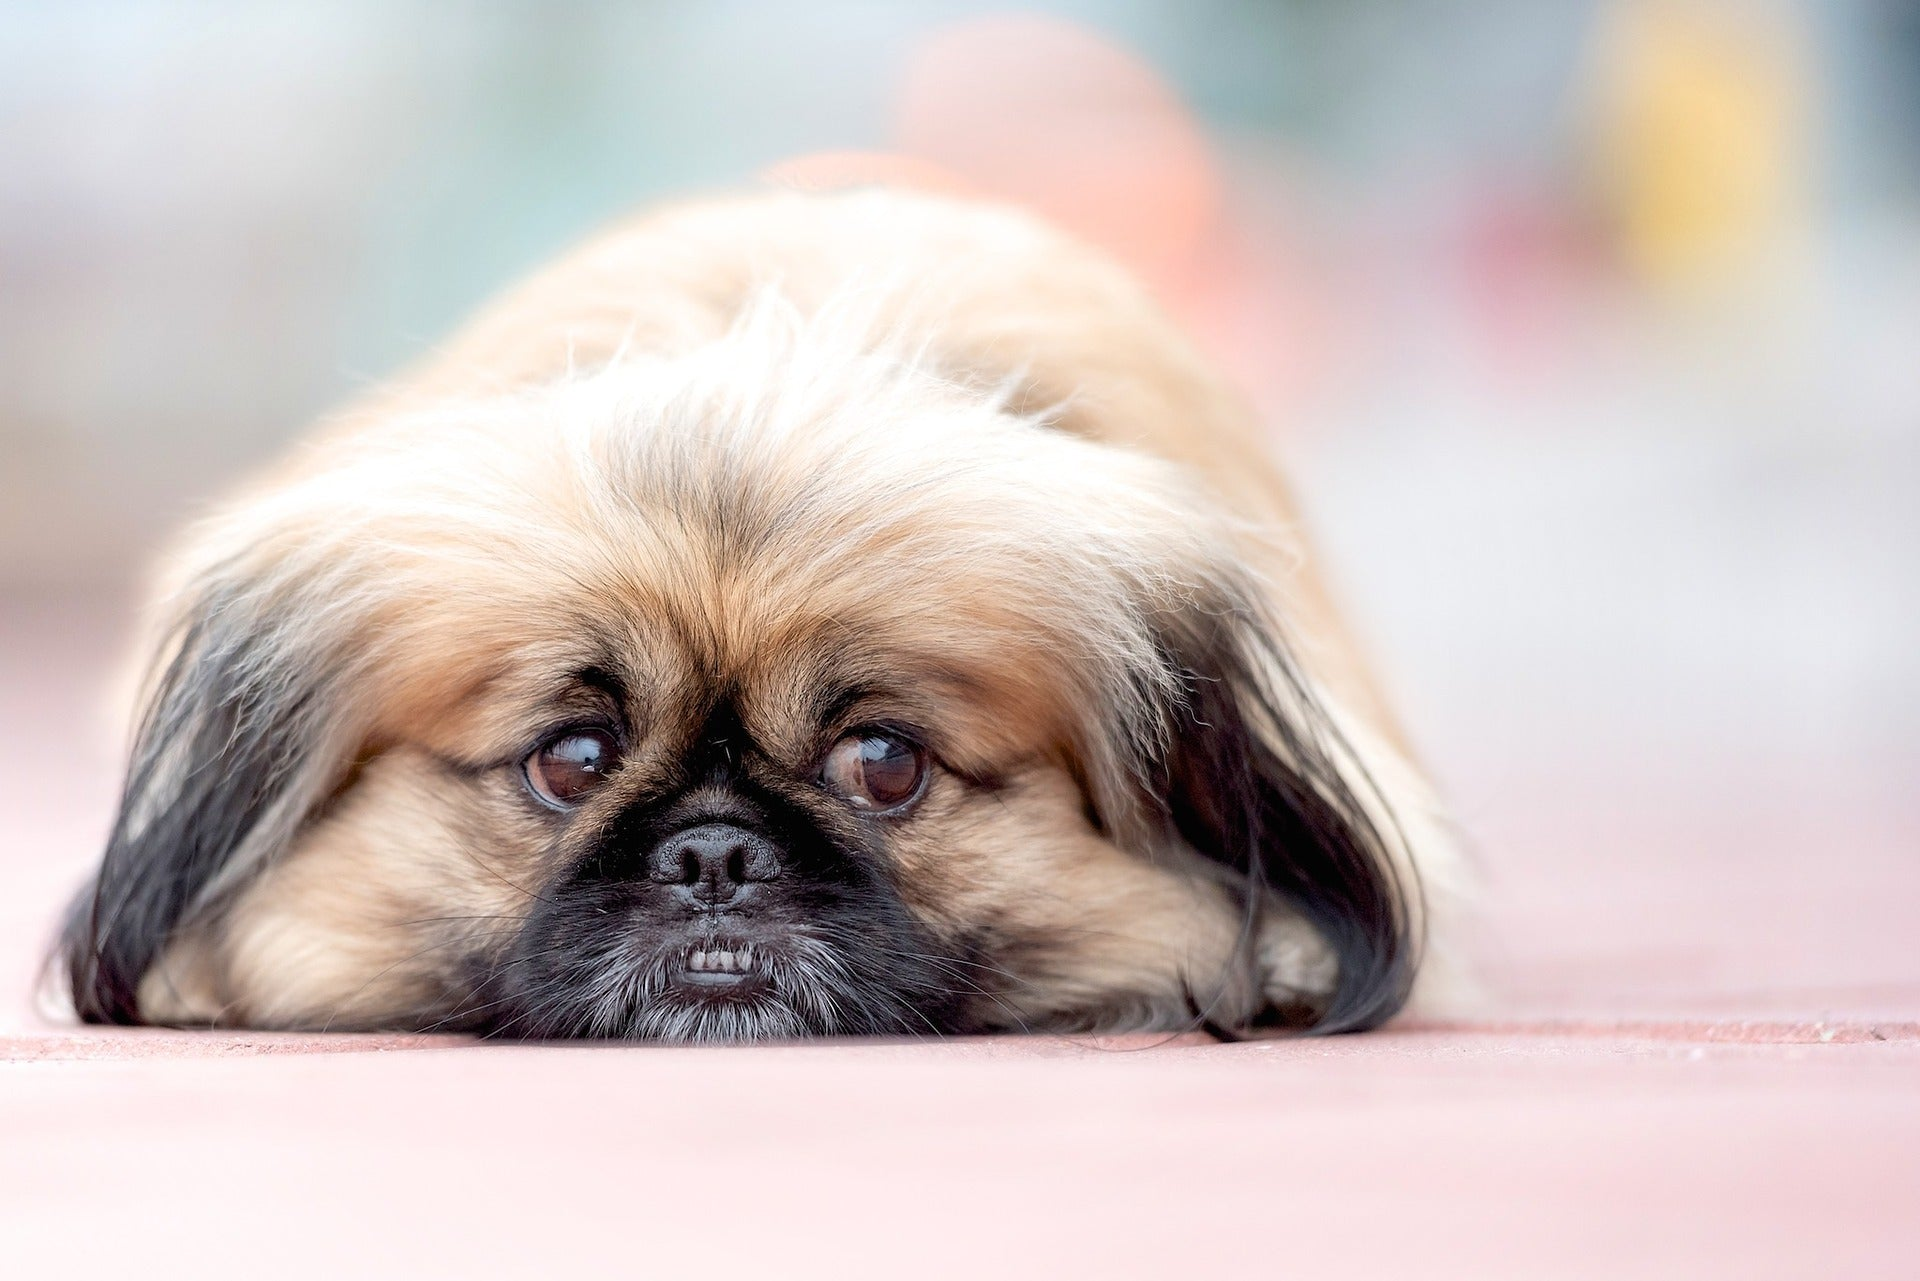 Brachycephalic Dogs: What makes them different?